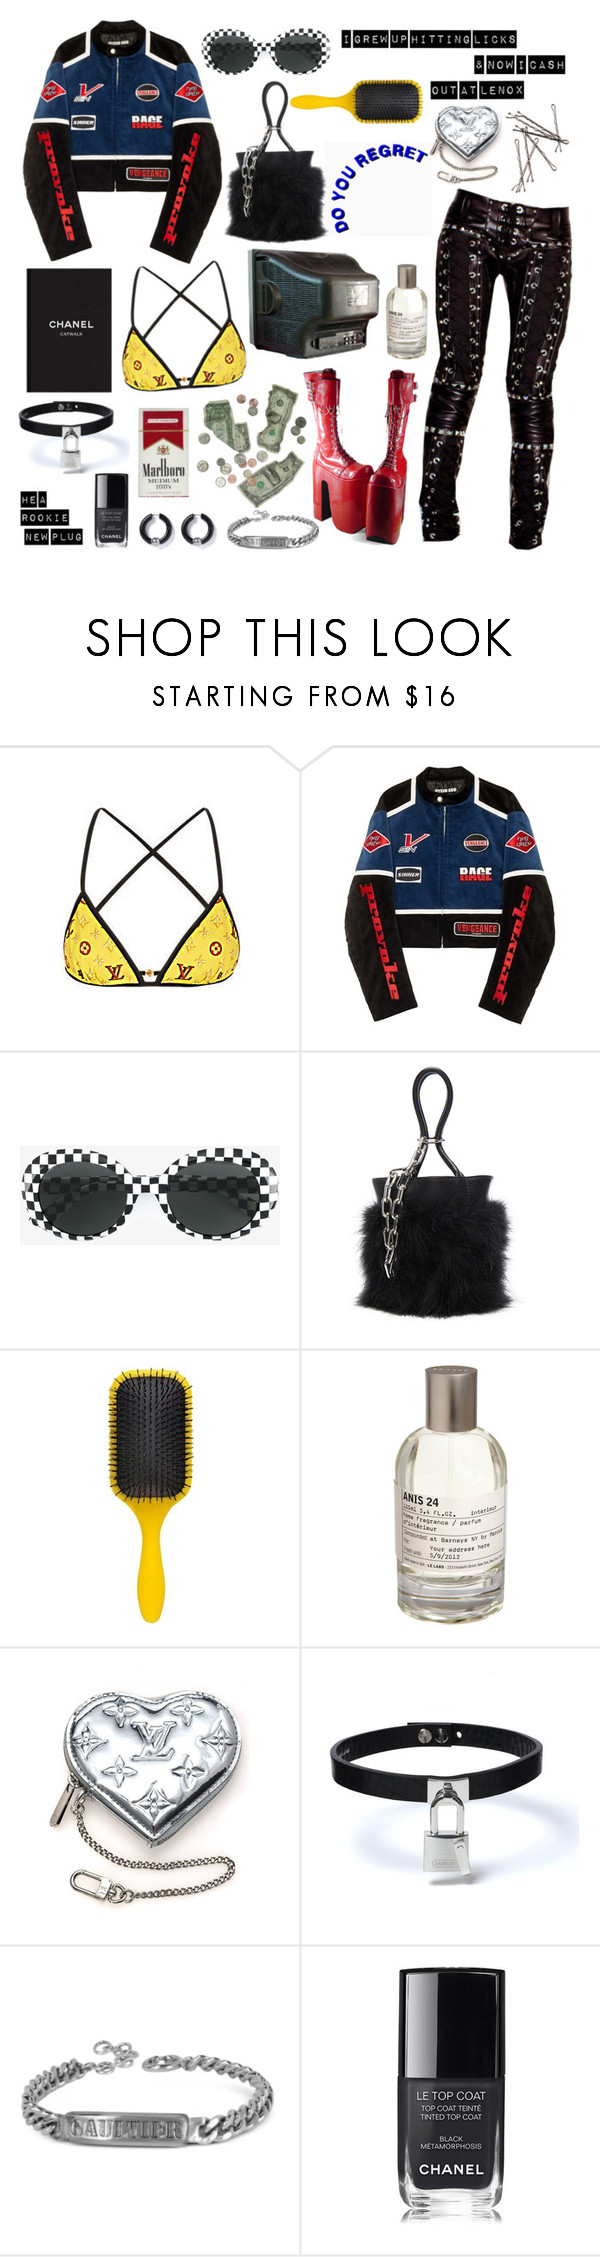 """On Me"" by lilslipknot ❤ liked on Polyvore featuring Vision, Louis Vuitton, Hyein Seo, Yves Saint Laurent, Alexander Wang, Denman, Le Labo, Jean-Paul Gaultier and Chanel"